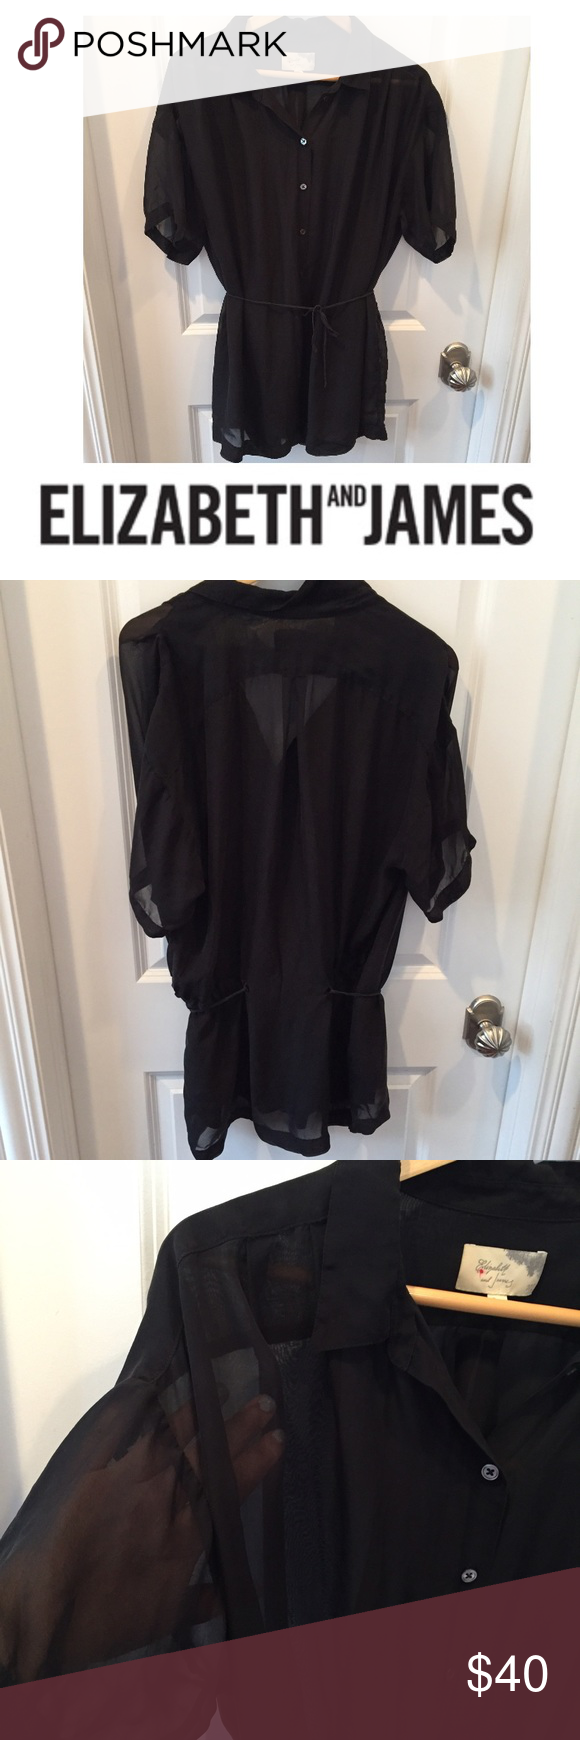 Elizabeth and James 100% Silk Black Sheer Tunic Elizabeth and James 100% Silk Black Sheer Tunic. 18 inch bust. 32 inches long . Tie. Great condition. Feel free to make an offer or bundle & save! Elizabeth and James Tops Tunics